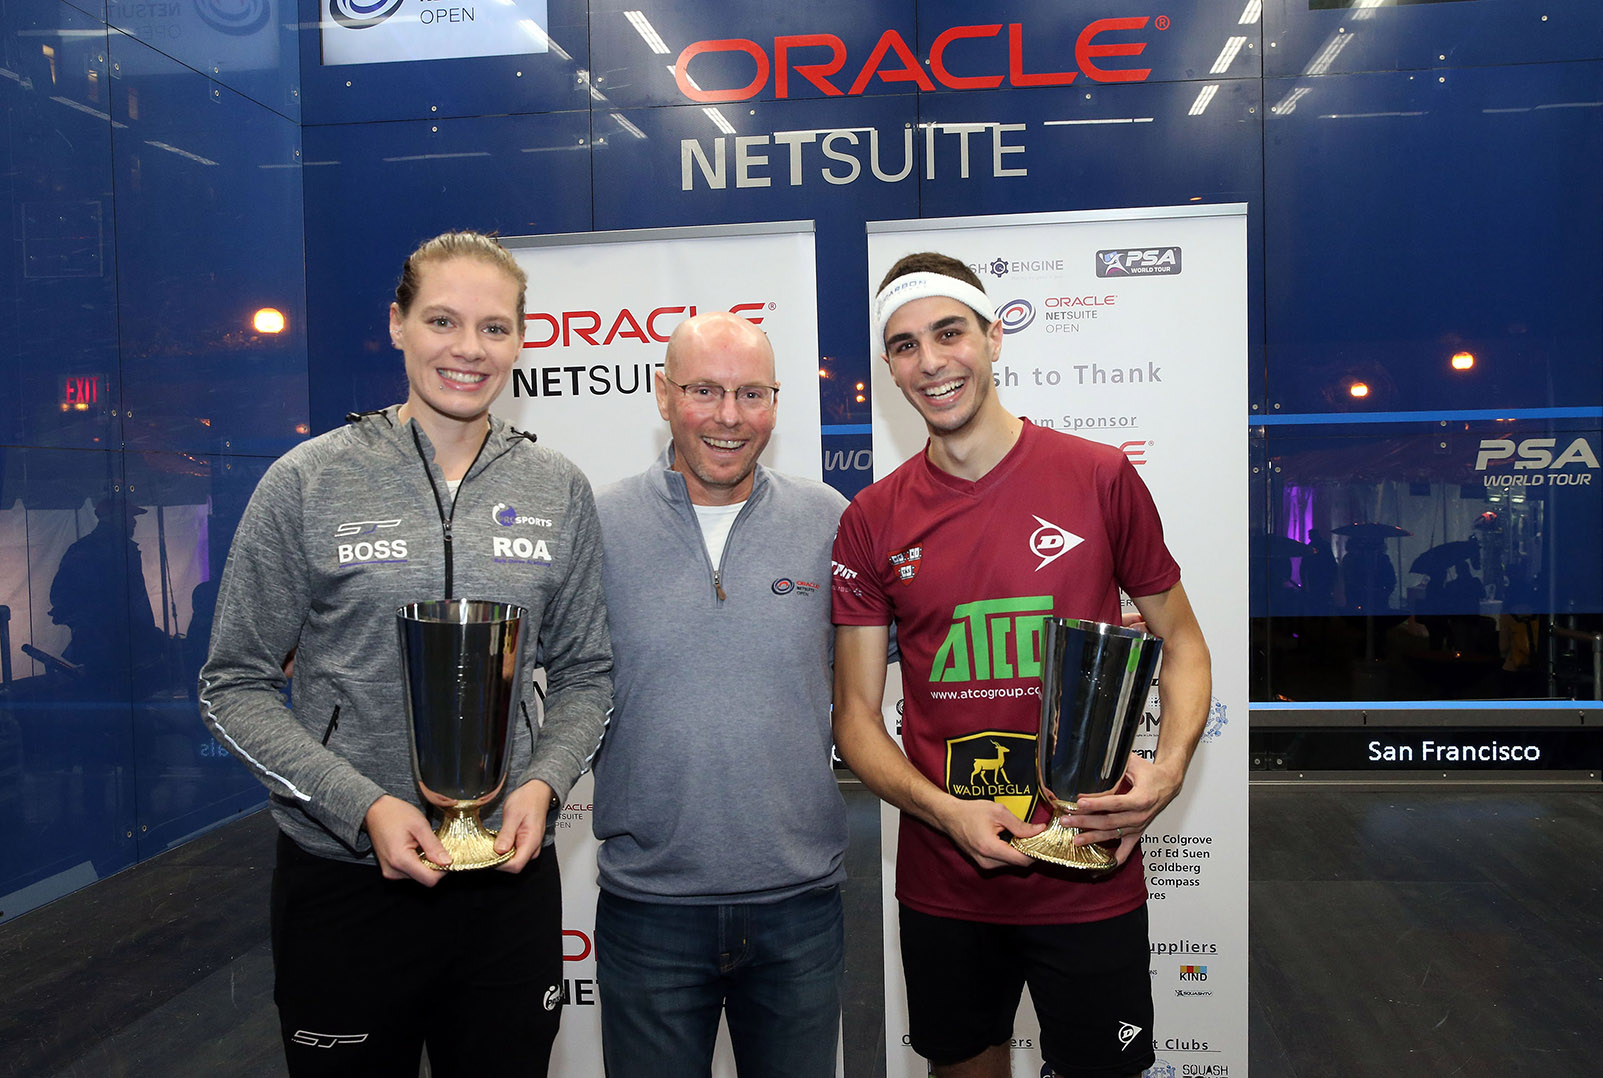 Perry Pulls Off Back-to-Back Oracle NetSuite Open Titles; Farag Dethrones World No. 1 ElShorbagy